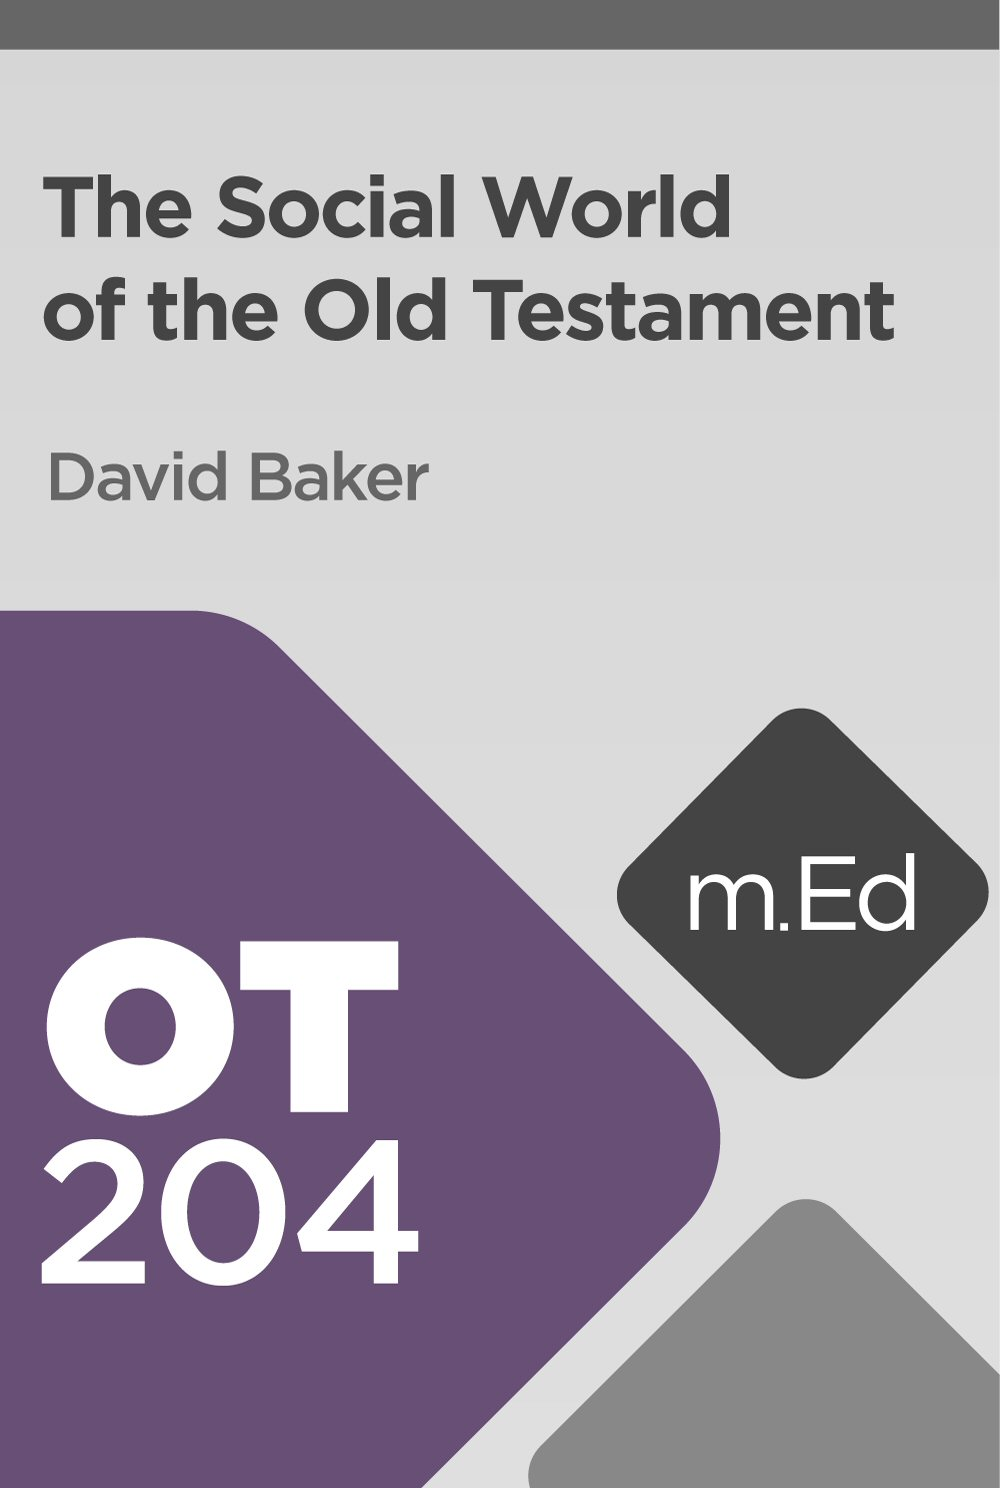 Mobile Ed: OT204 Social World of the Old Testament (4 hour course)